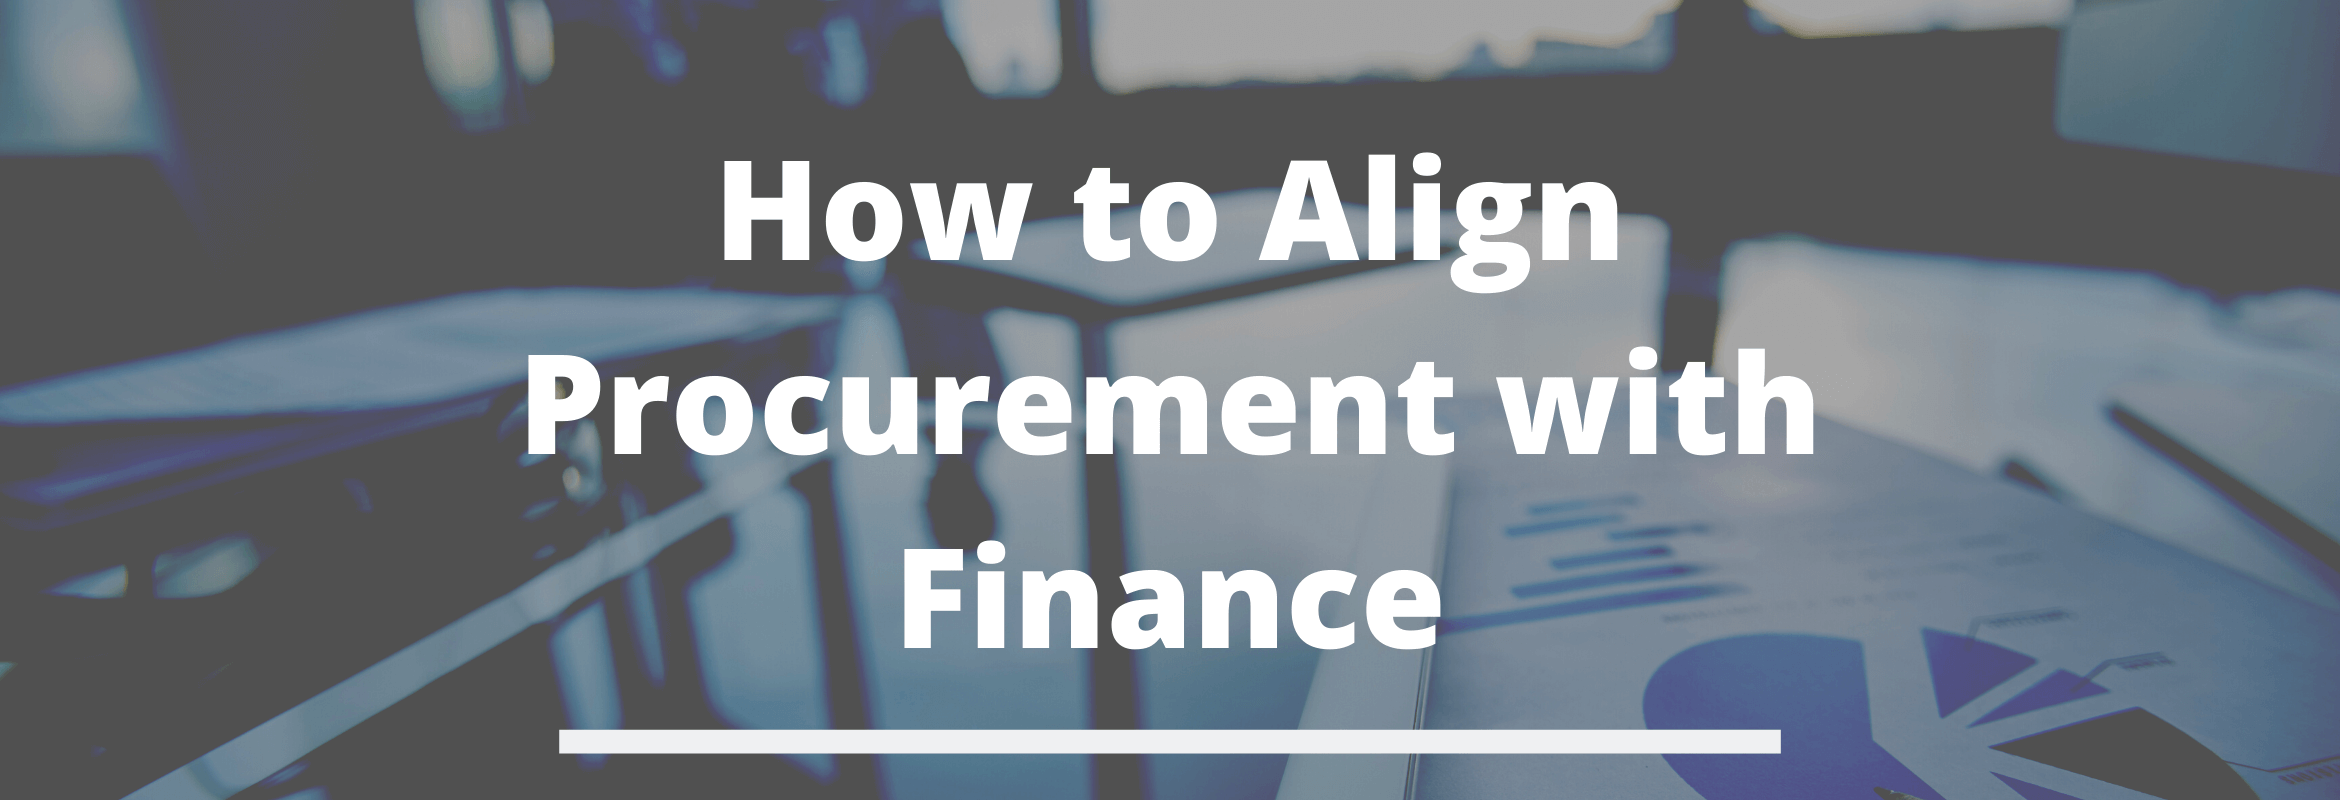 All of these strategies are essential to help procurement succeed in collaborating with finance, but you have a far greater likelihood of success if you select the right tools. Choose a digital solution that offers robust reporting, enhances visibility, and enables real-time engagement.